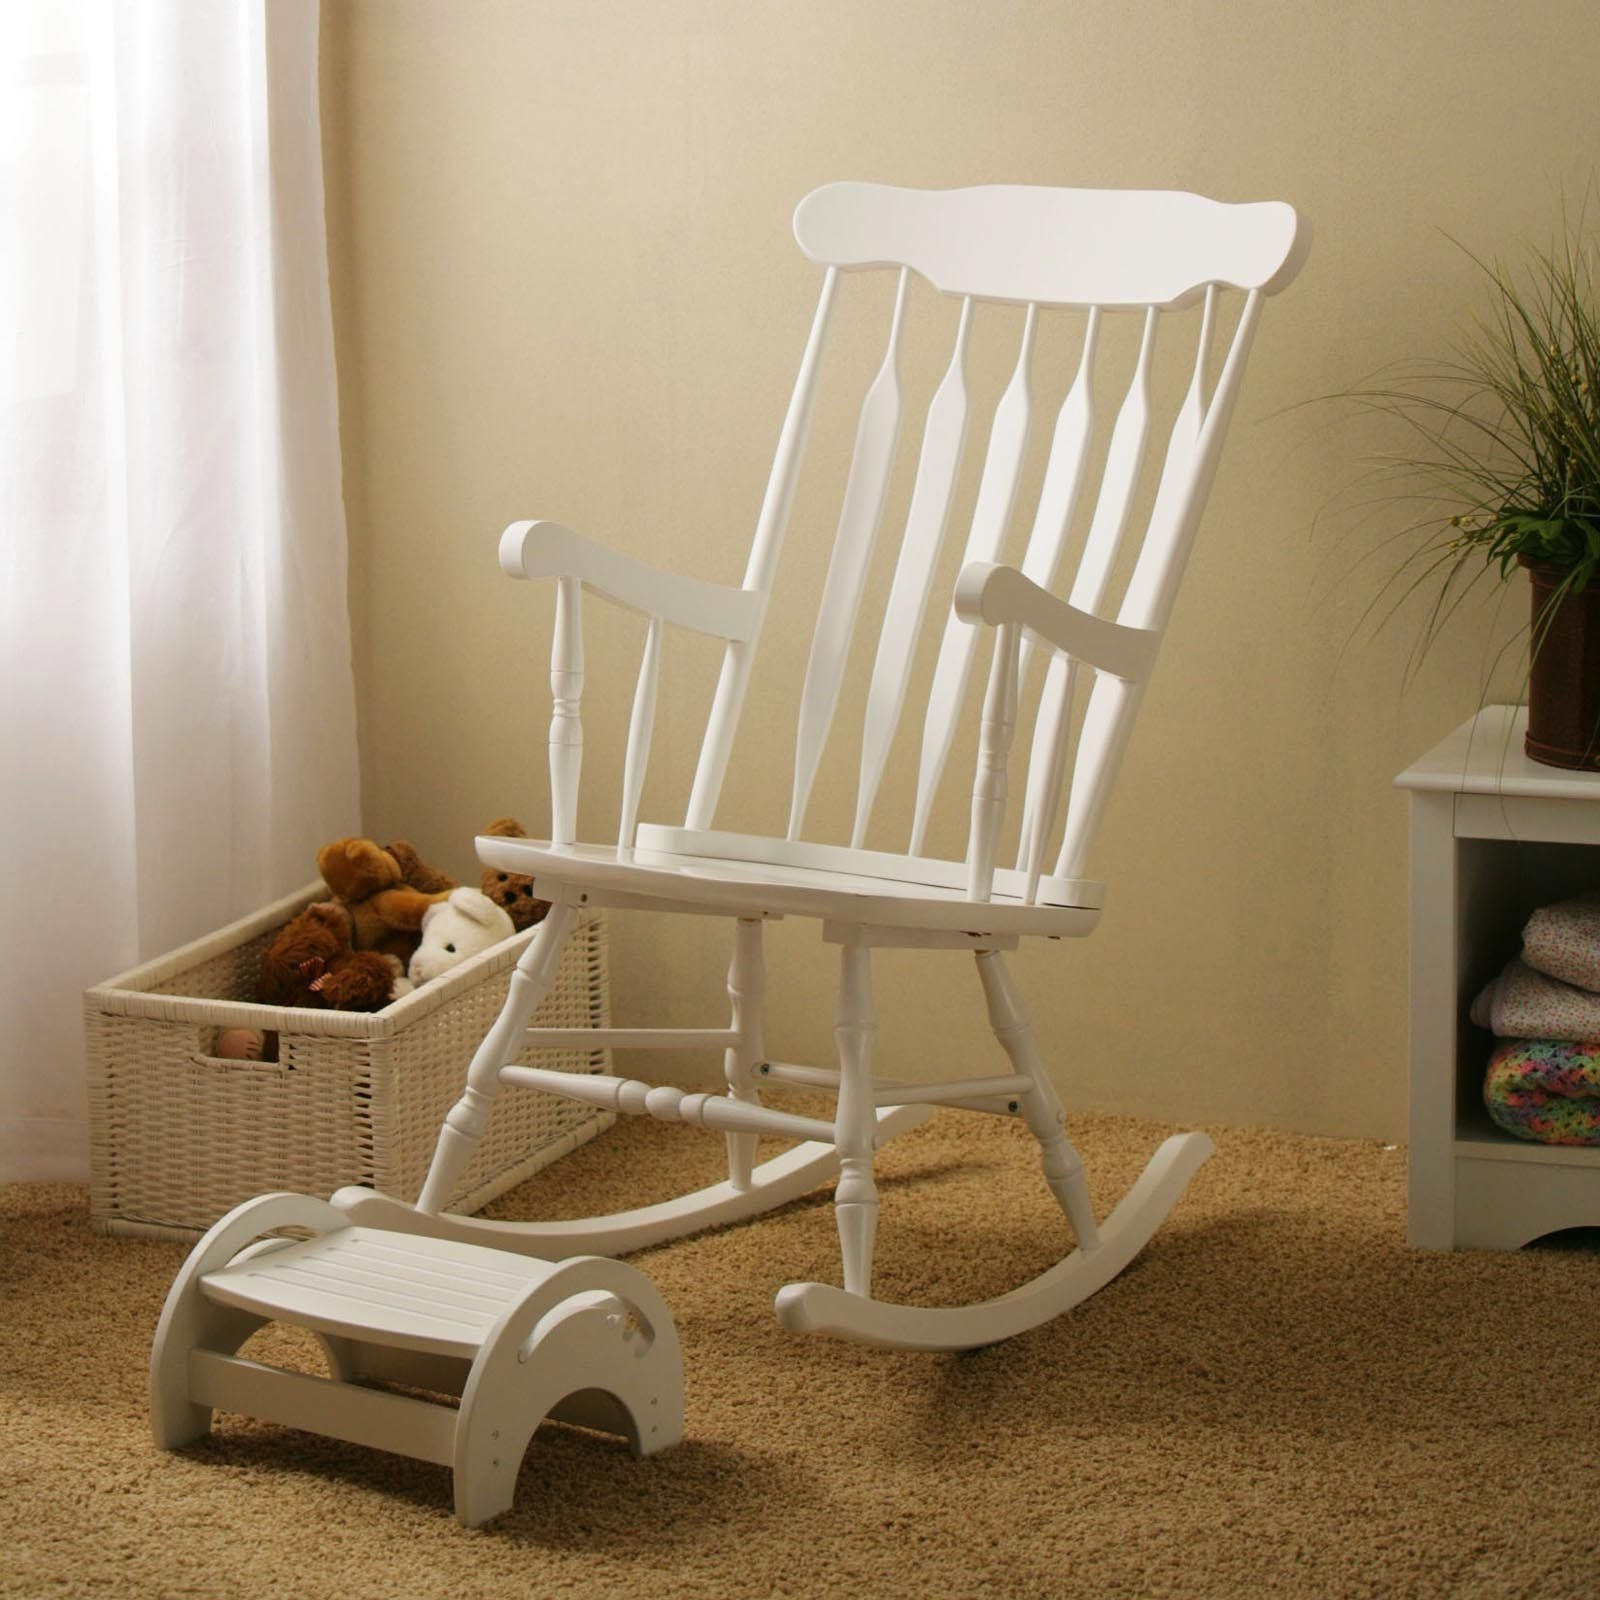 Fashionable Rocking A Newborn Baby To Sleep In A Comfy Nursery Chair Is A Great Throughout White Wicker Rocking Chair For Nursery (View 4 of 15)